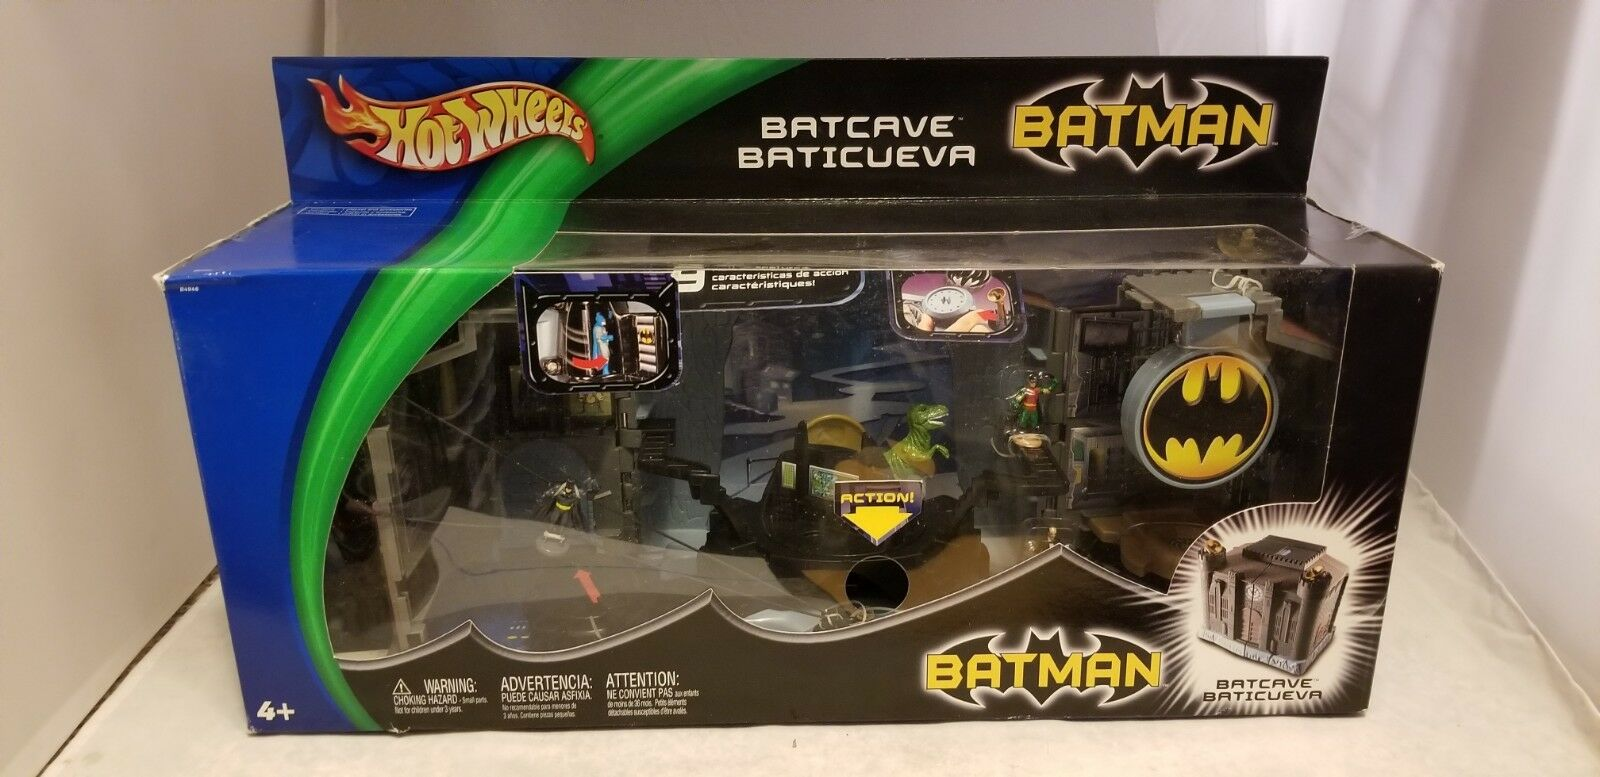 2003 HOT WHEELS BATMAN BATCAVE PLAYSET